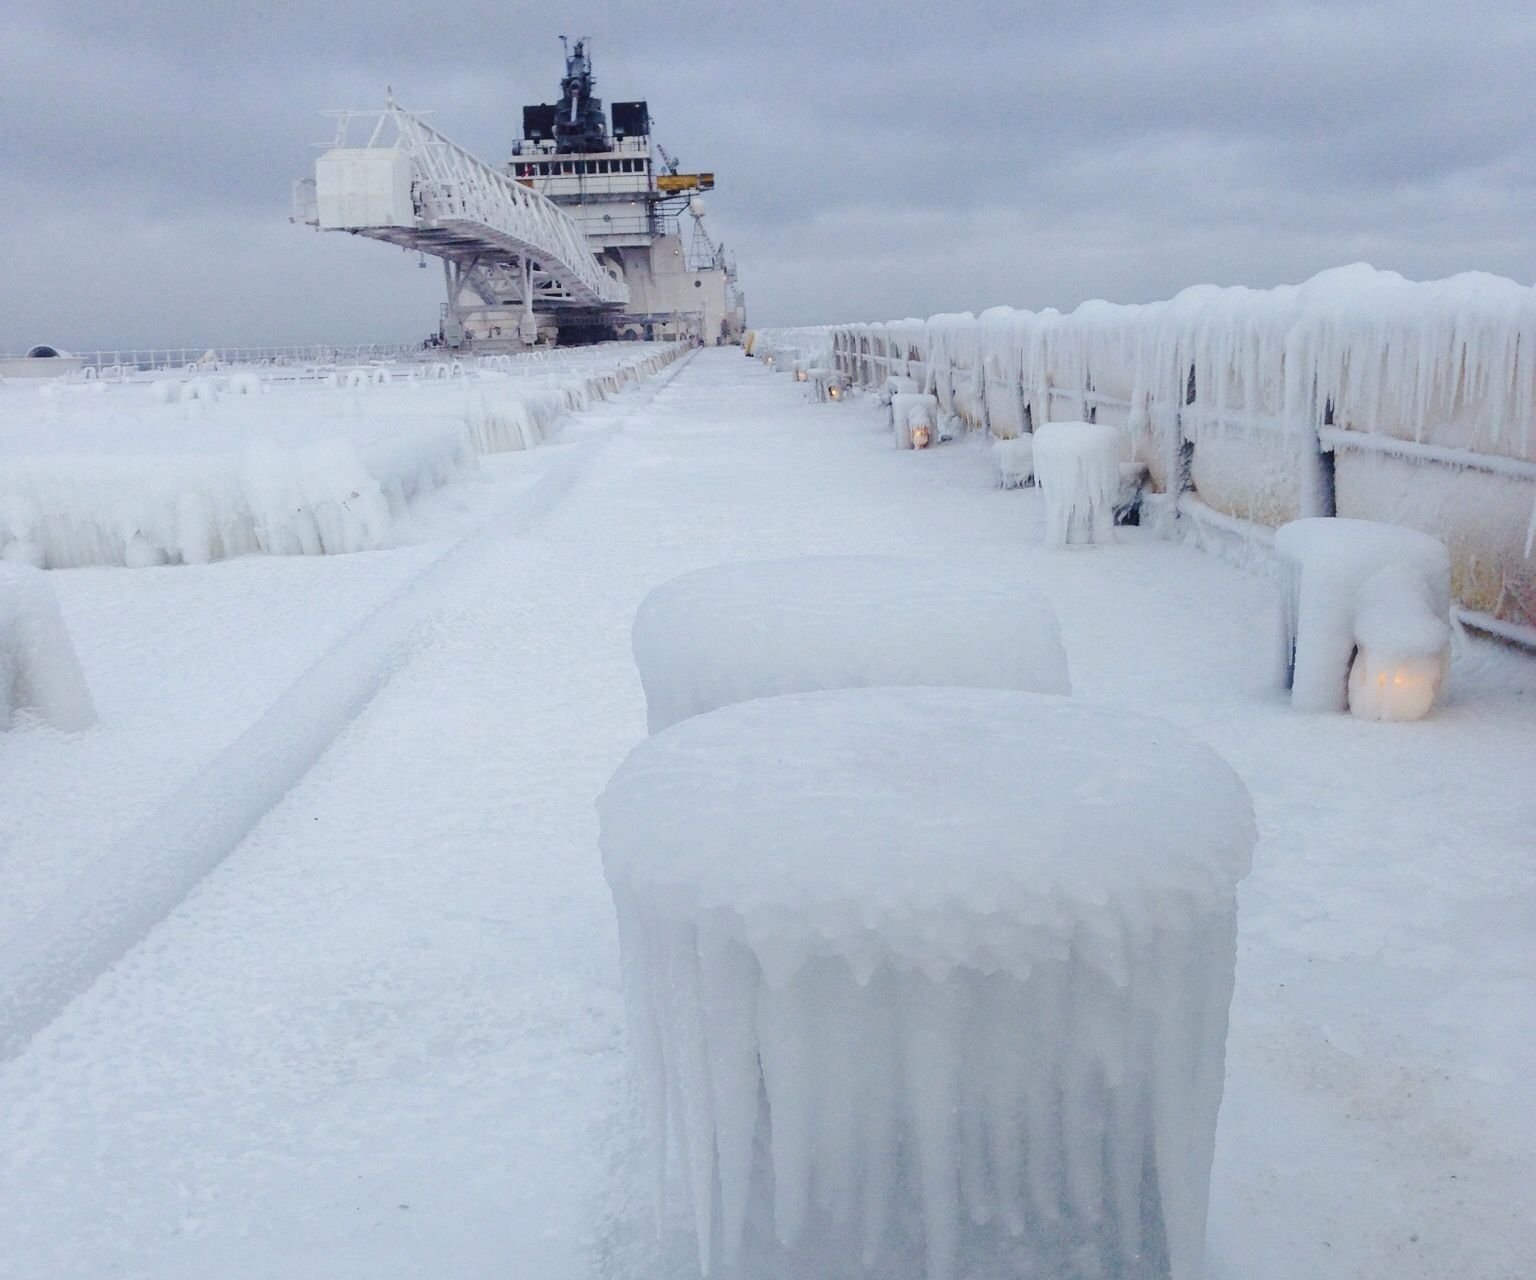 How To Get A 630' Freighter Out Of the Thickest Ice In 40 Years.